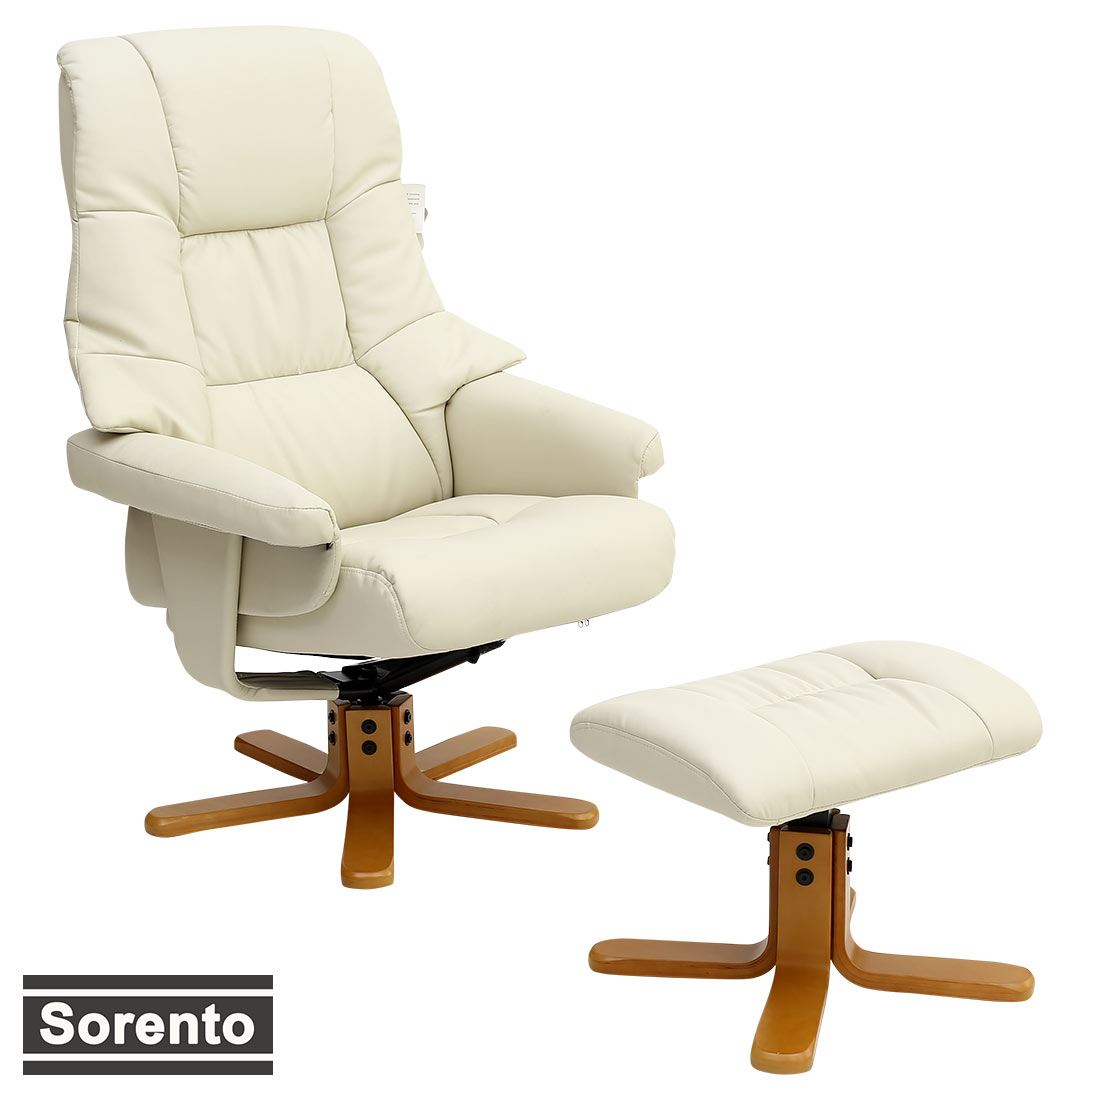 sorento real leather cream swivel recliner chair w foot stool armchair